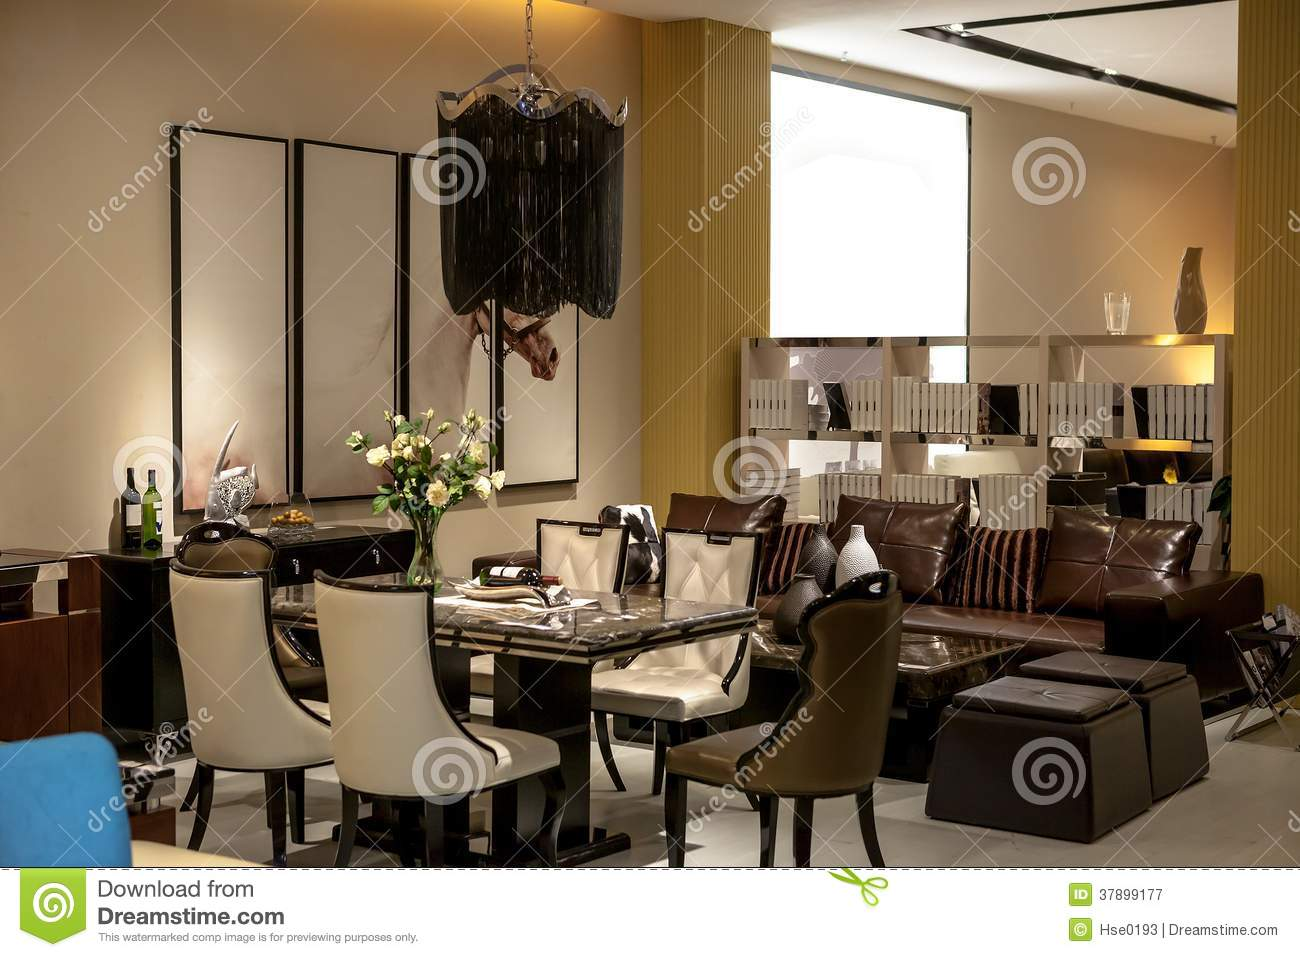 dining room and lounge area royalty free stock photography - image